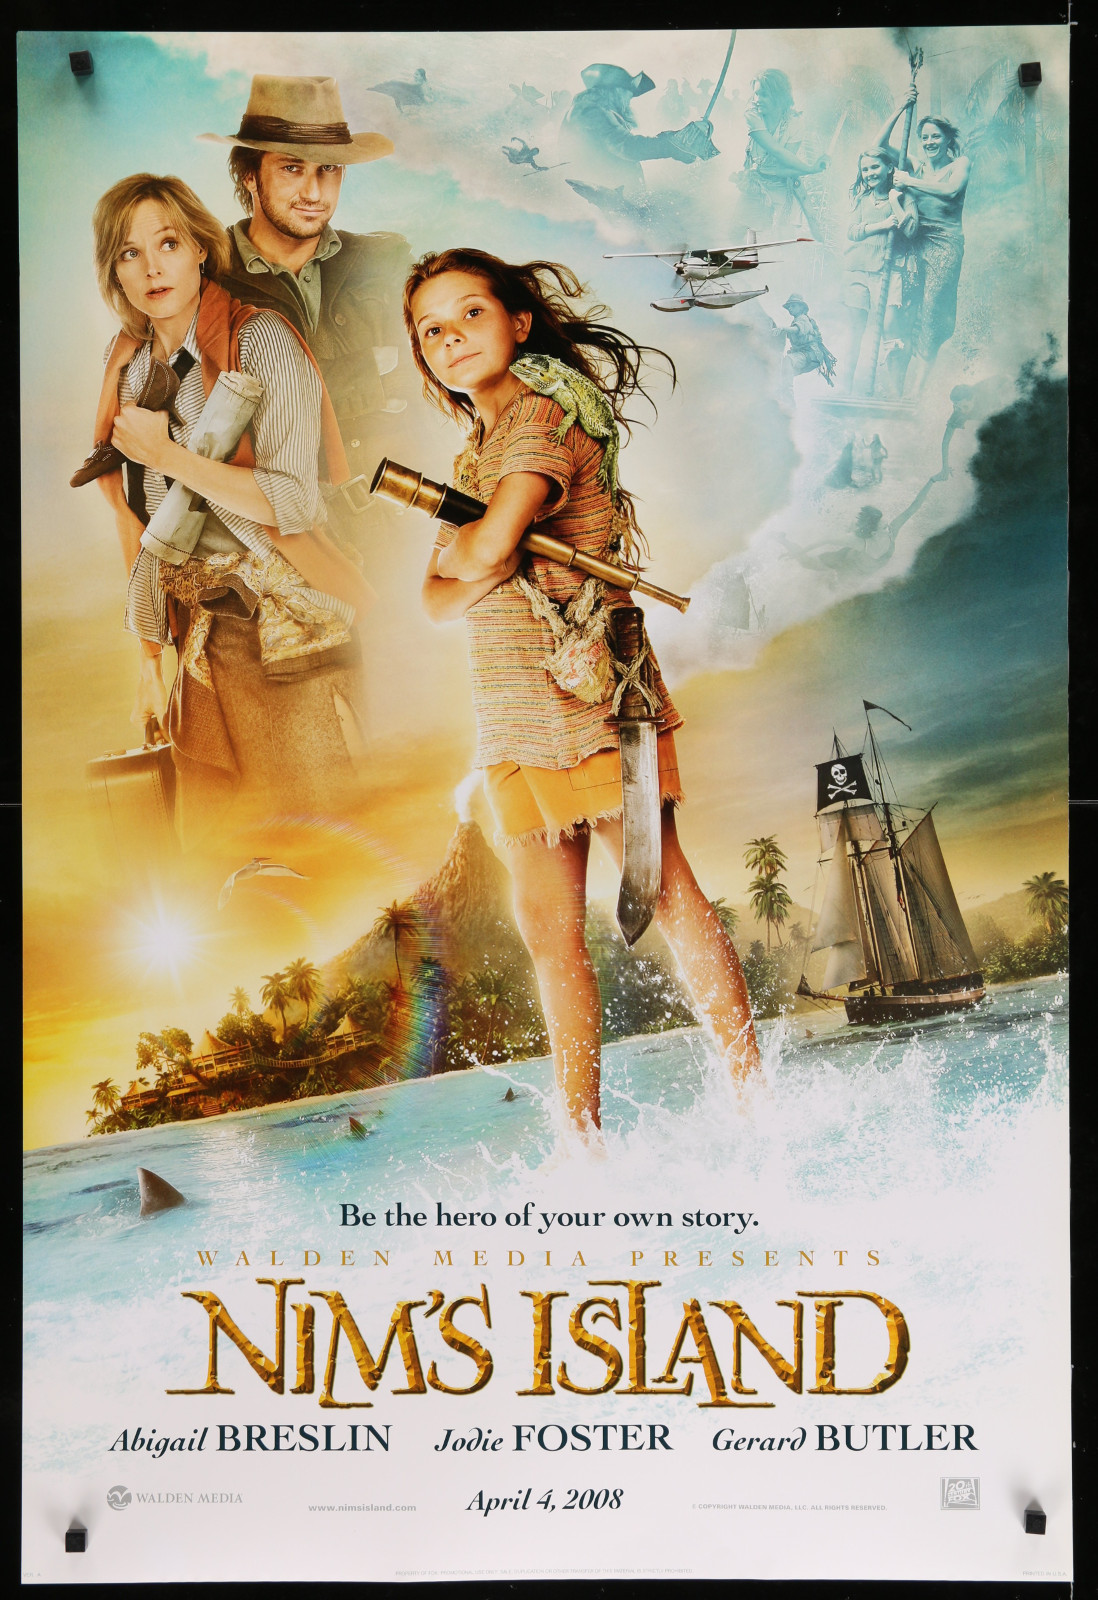 Nim'S Island 2A366 A Part Of A Lot 29 Unfolded Double-Sided 27X40 One-Sheets '90S-00S Great Movie Images!